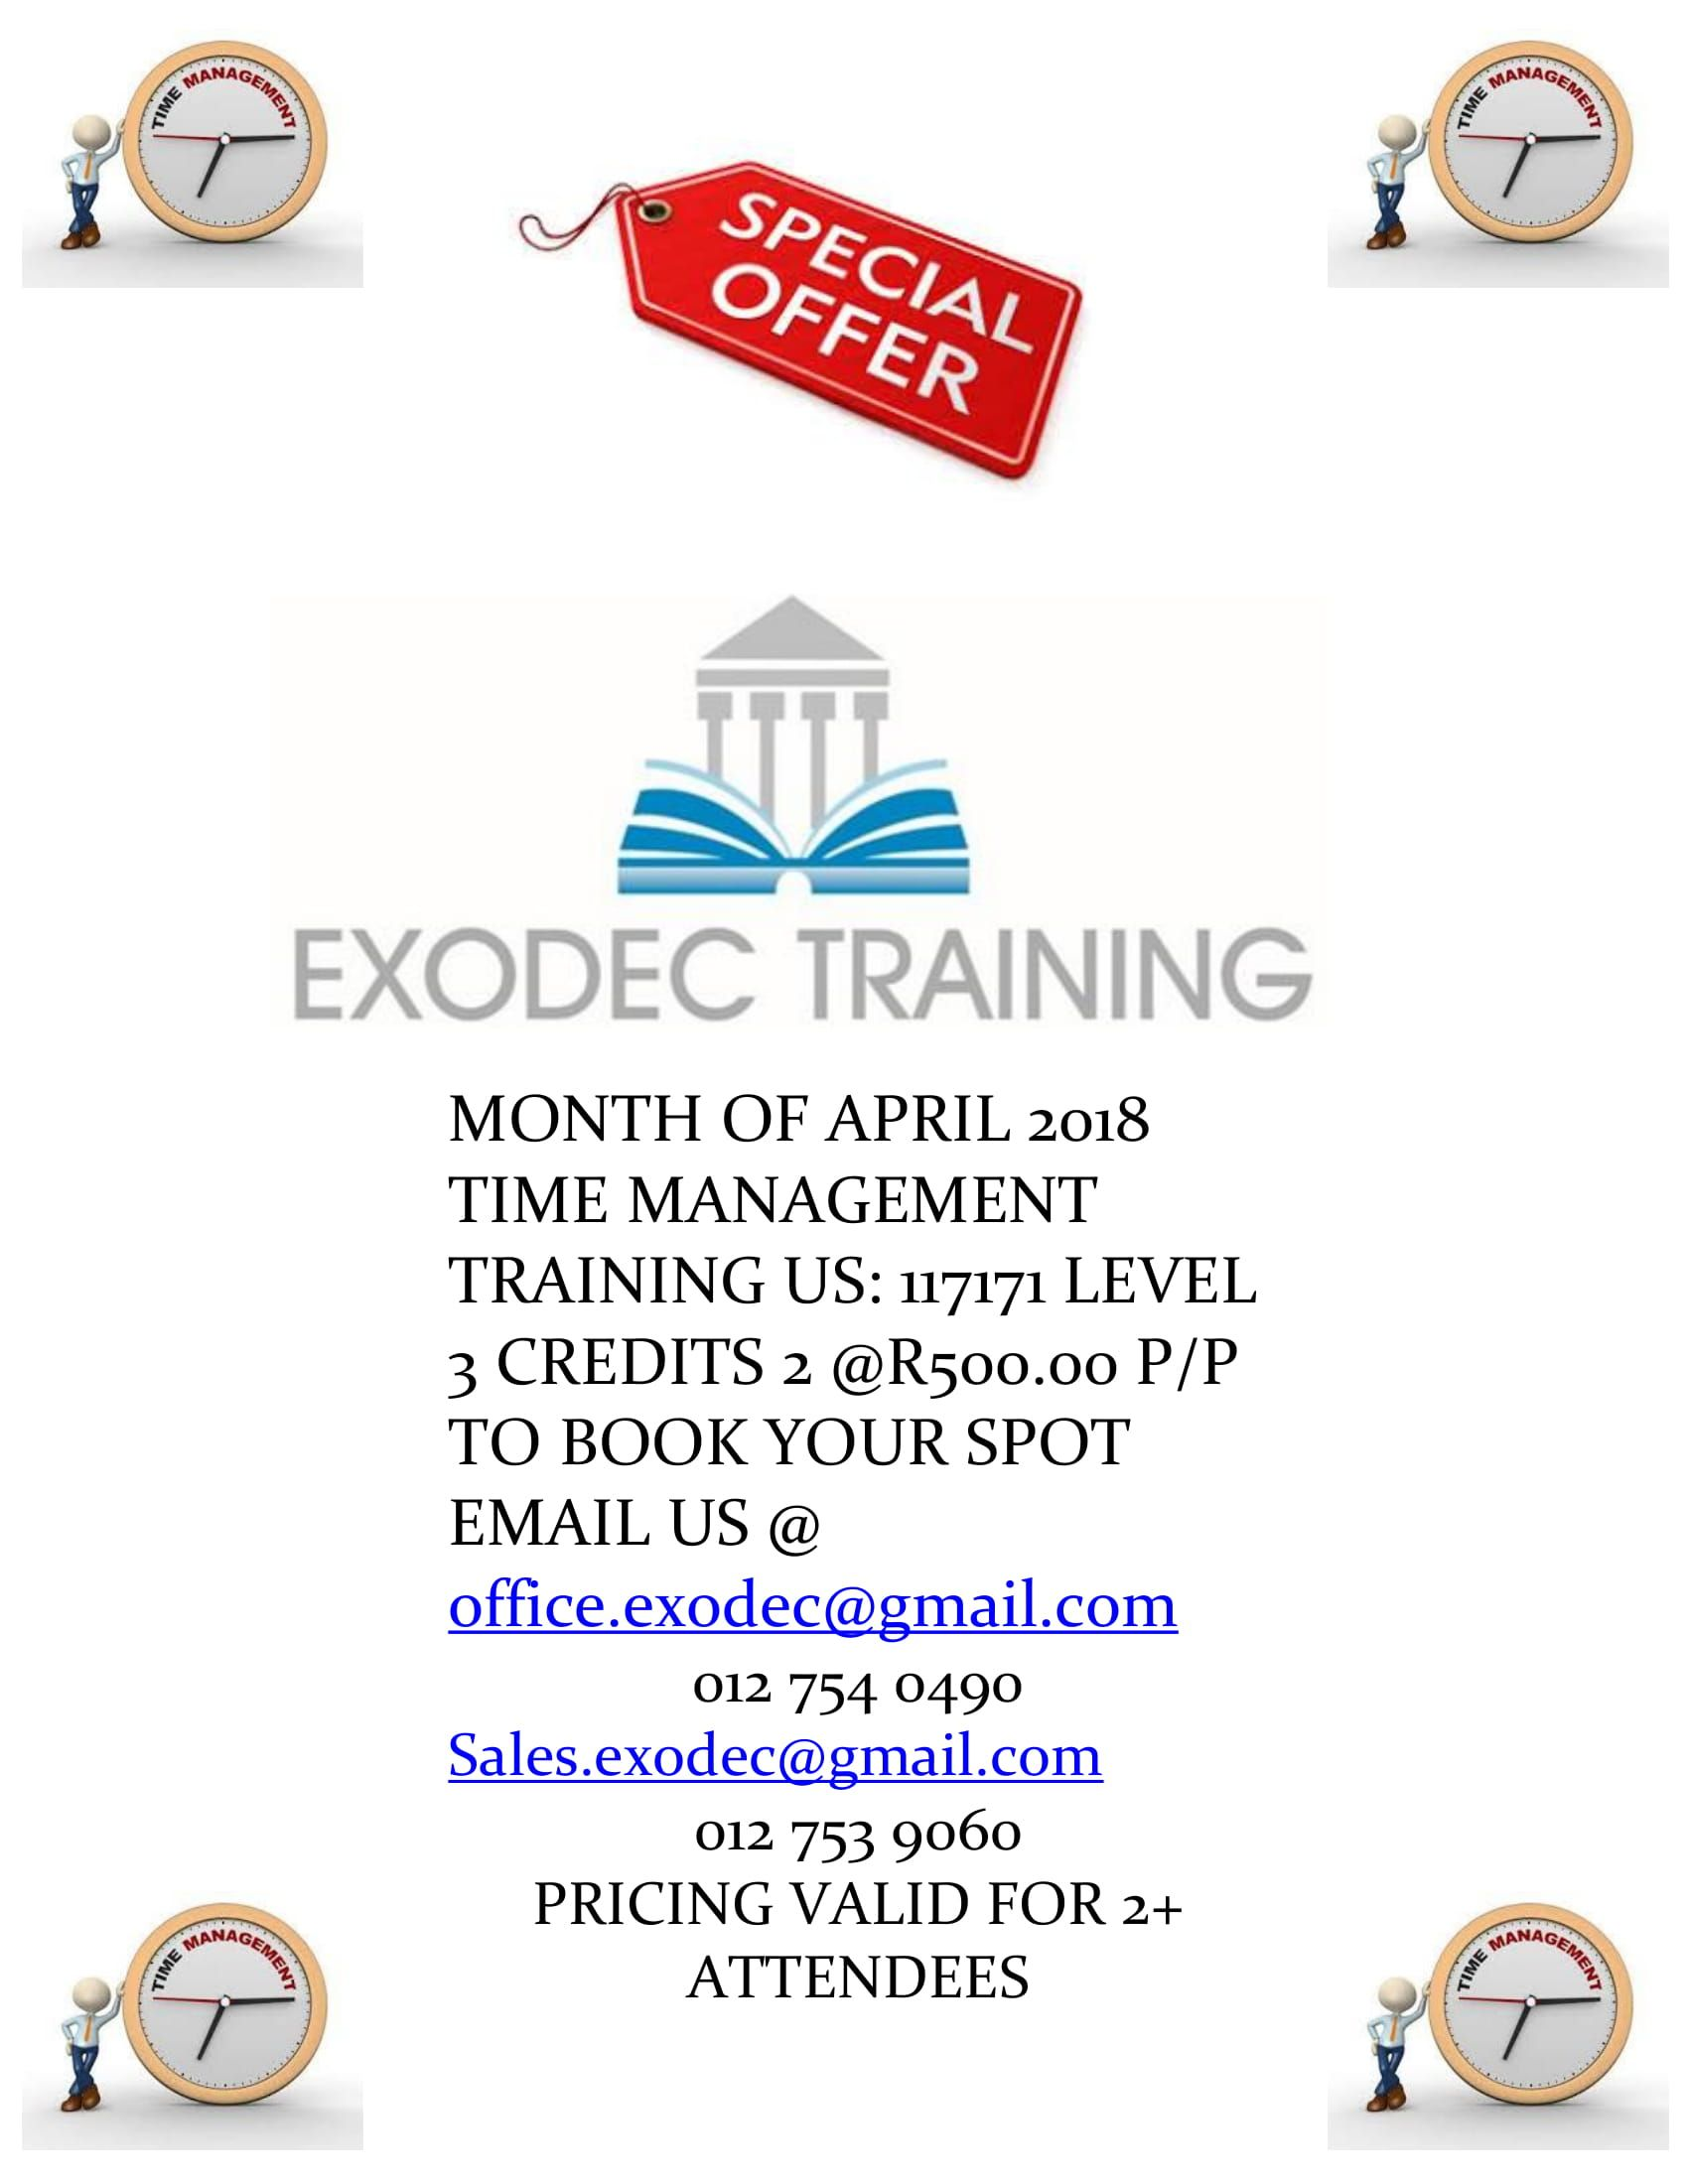 Exodec Training Promo for the Month of April is The Time